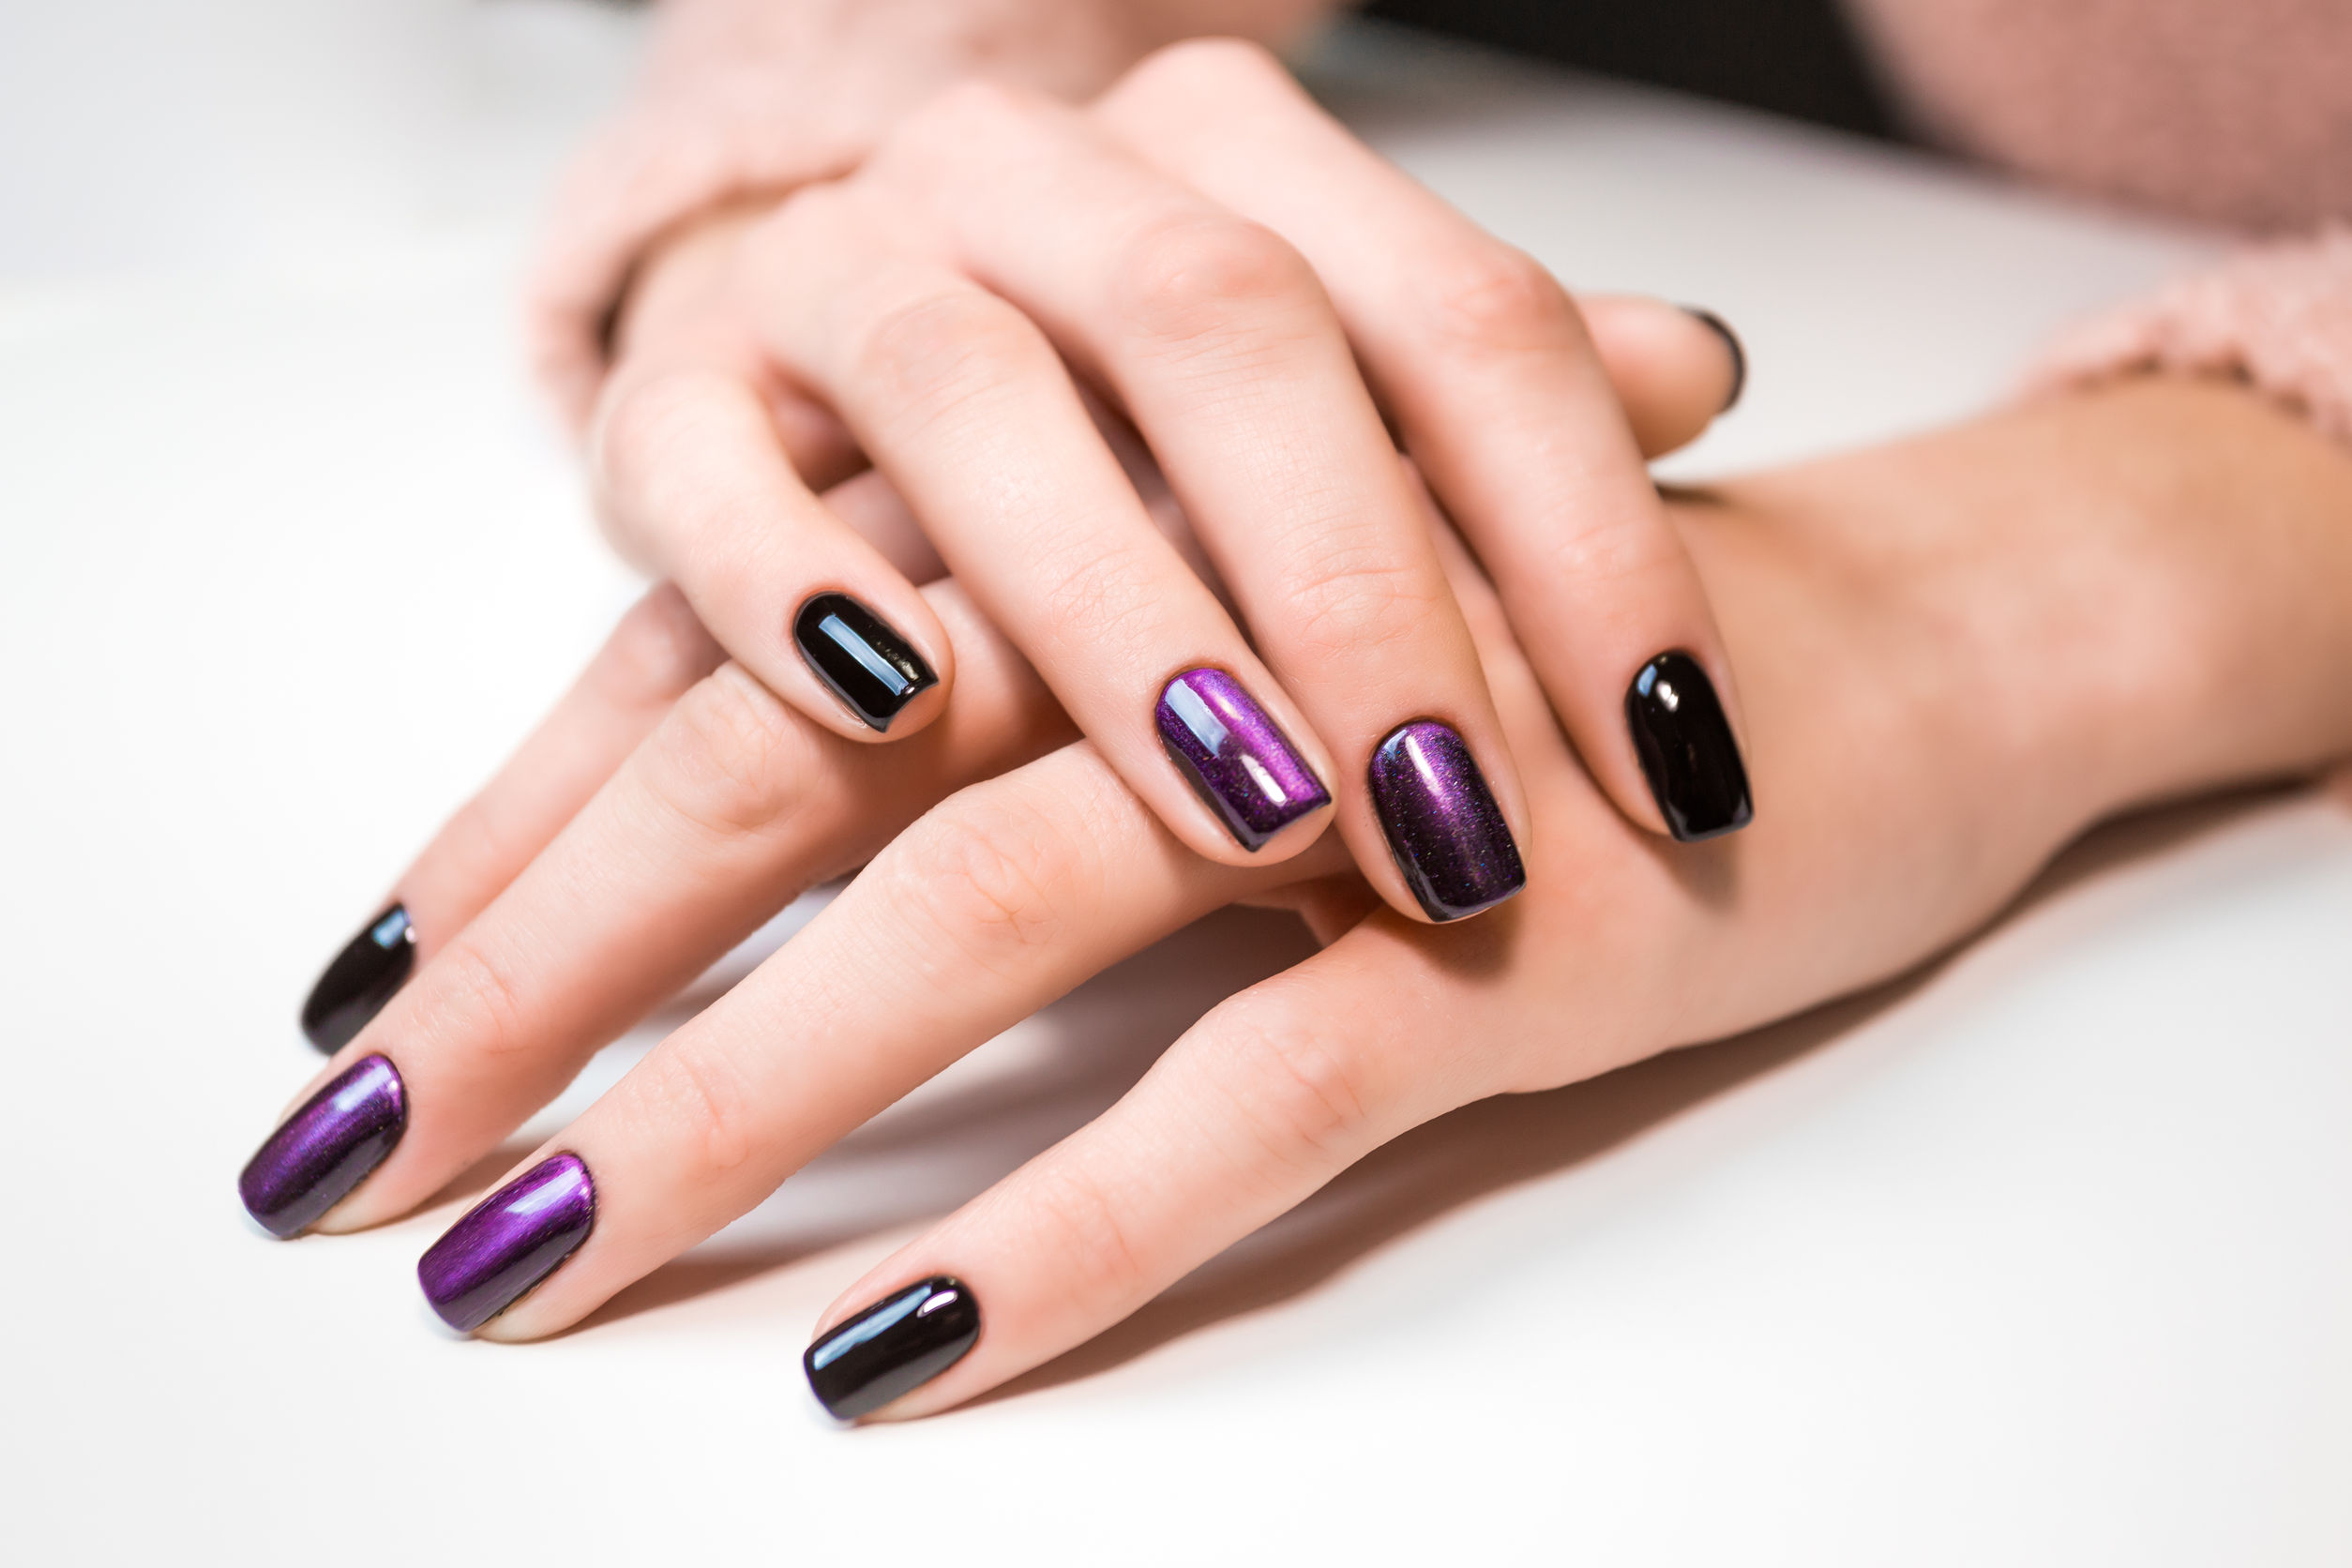 Why do clients often choose a gel manicure?